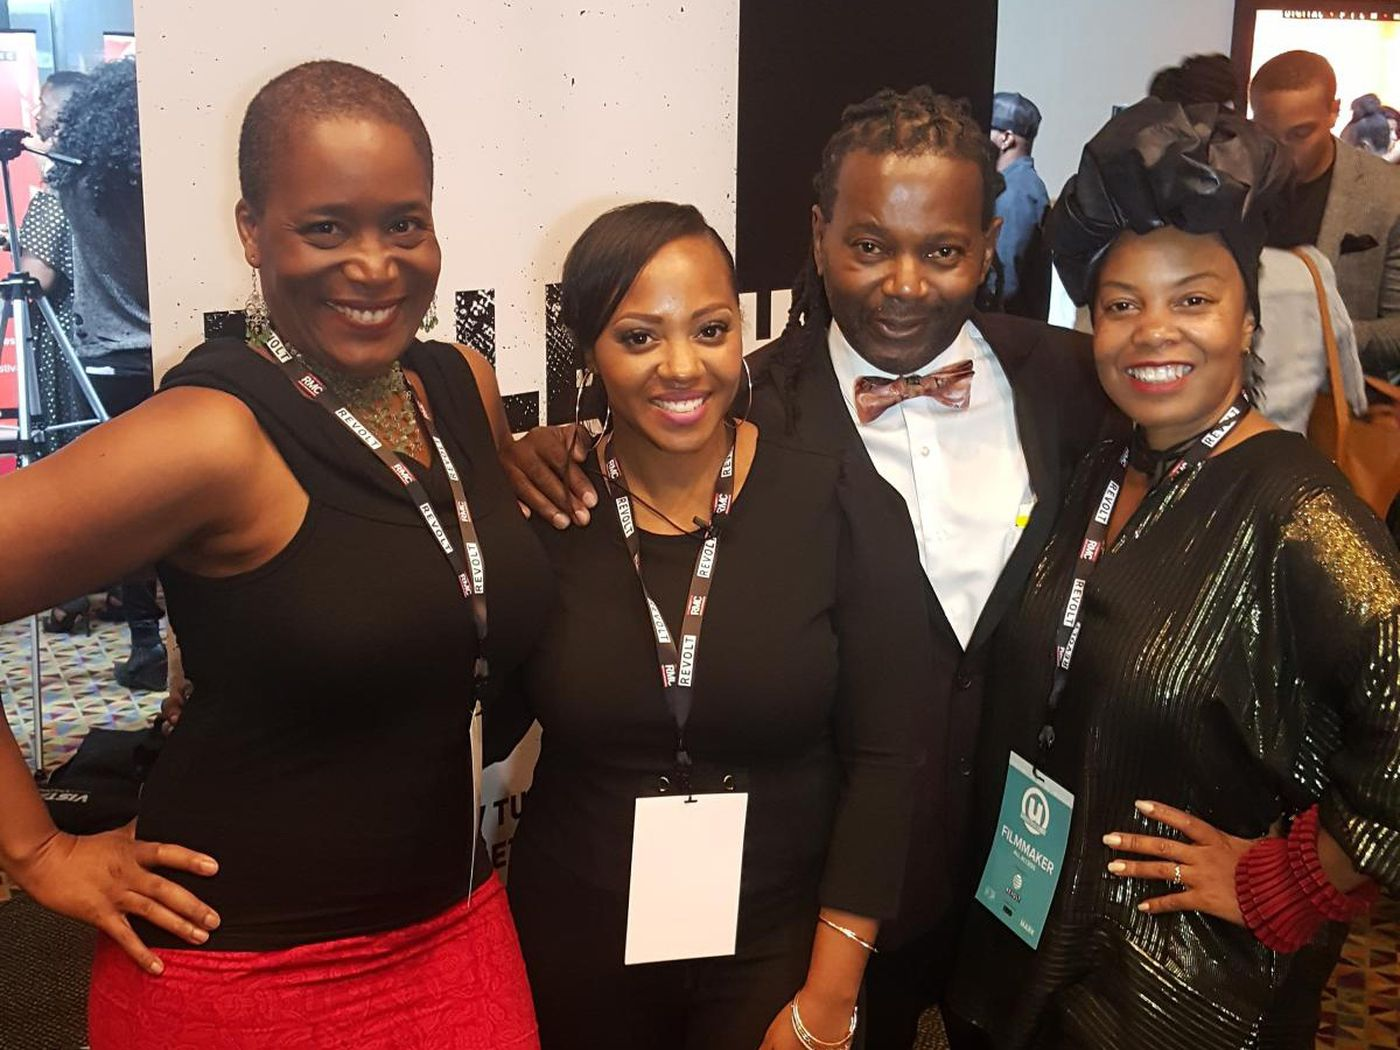 """Cast of """"The Bill"""" at Urban World Film Fest 2017: (from left to right) Tanyika Carey, Perri Camper, Perry King and Crystal Whaley."""